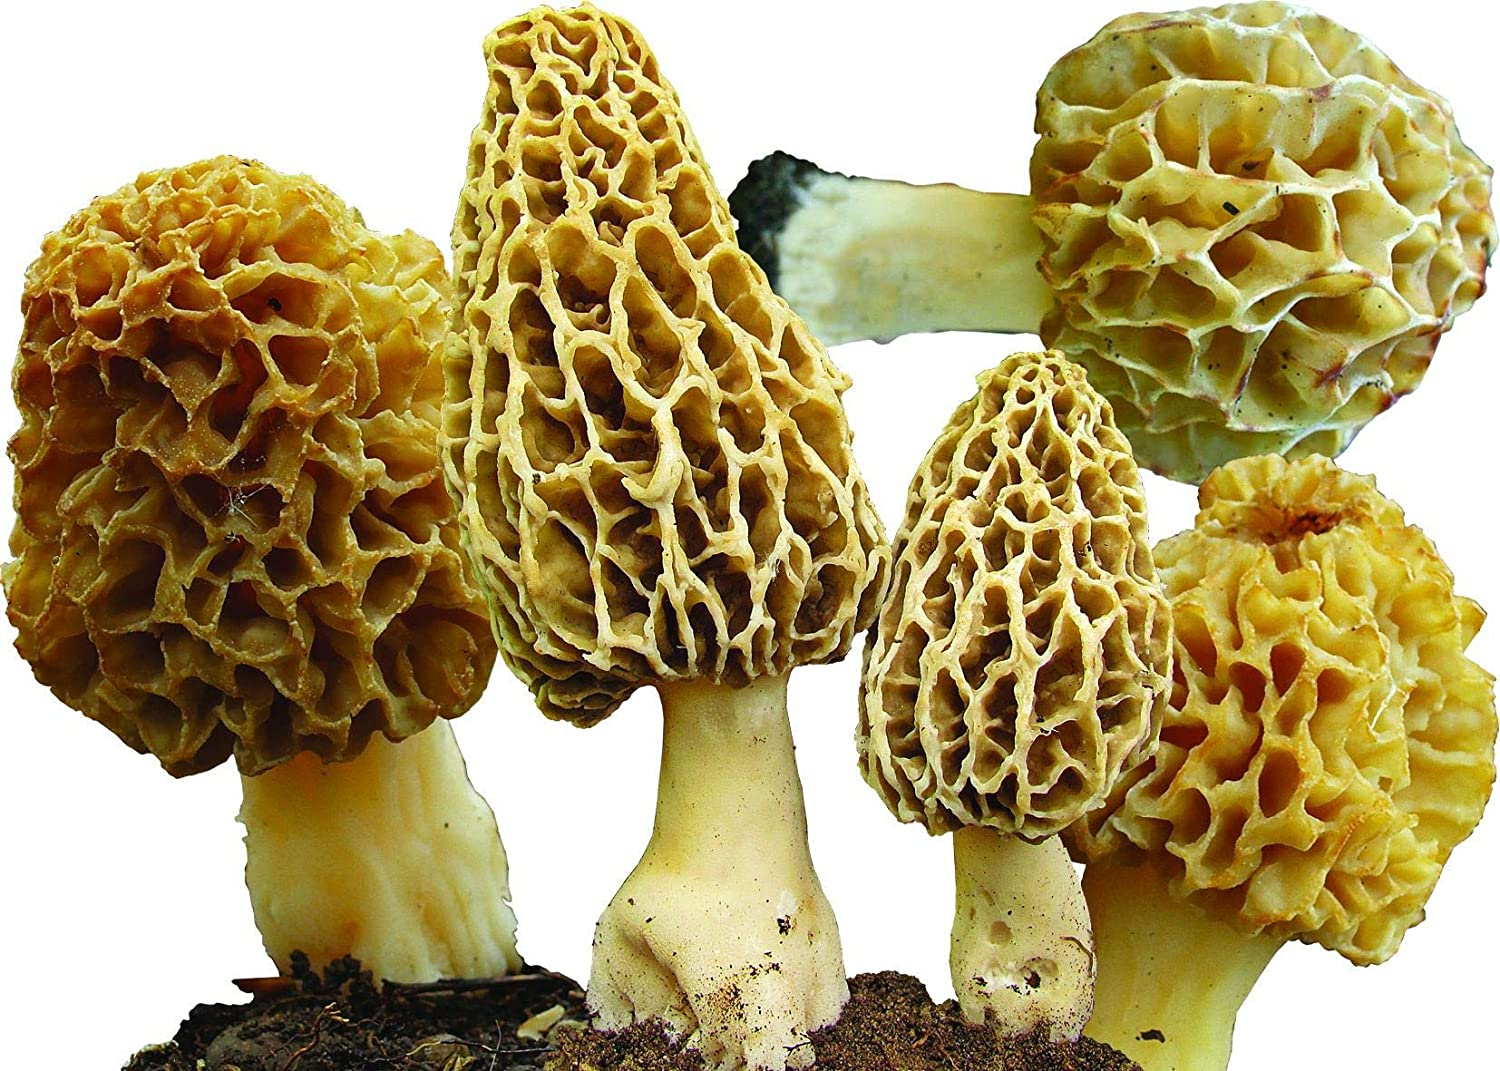 Amazon.com : 25 G Dry any Seeds infected of Spores Morels ...